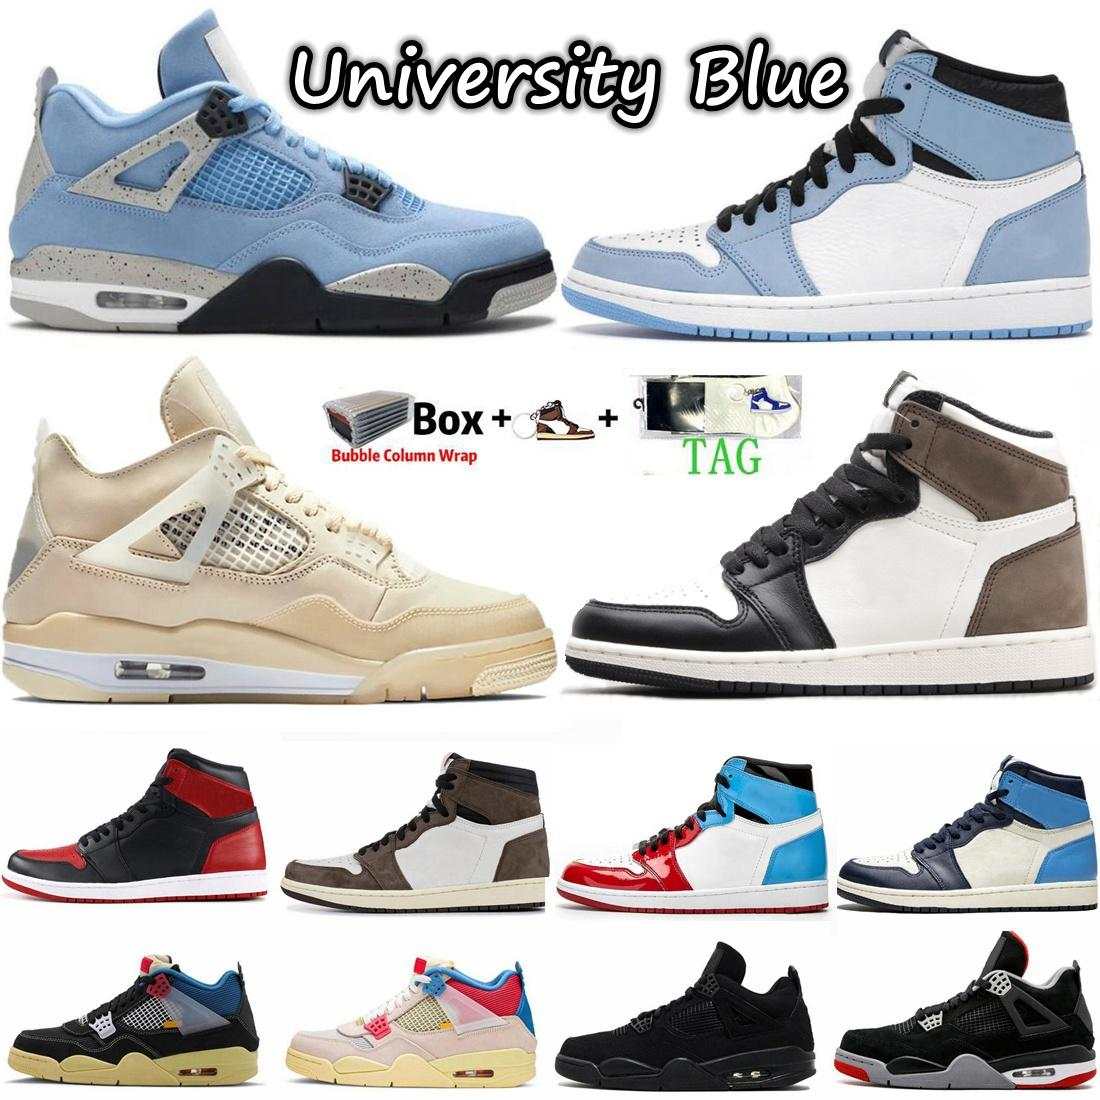 1 1s Travis Scotts shoes Obsidian UNC University Blue Twist What The Mens Basketball Shoe Black Cat Bred 4 4s Sail Guava Ice Women Sneakers